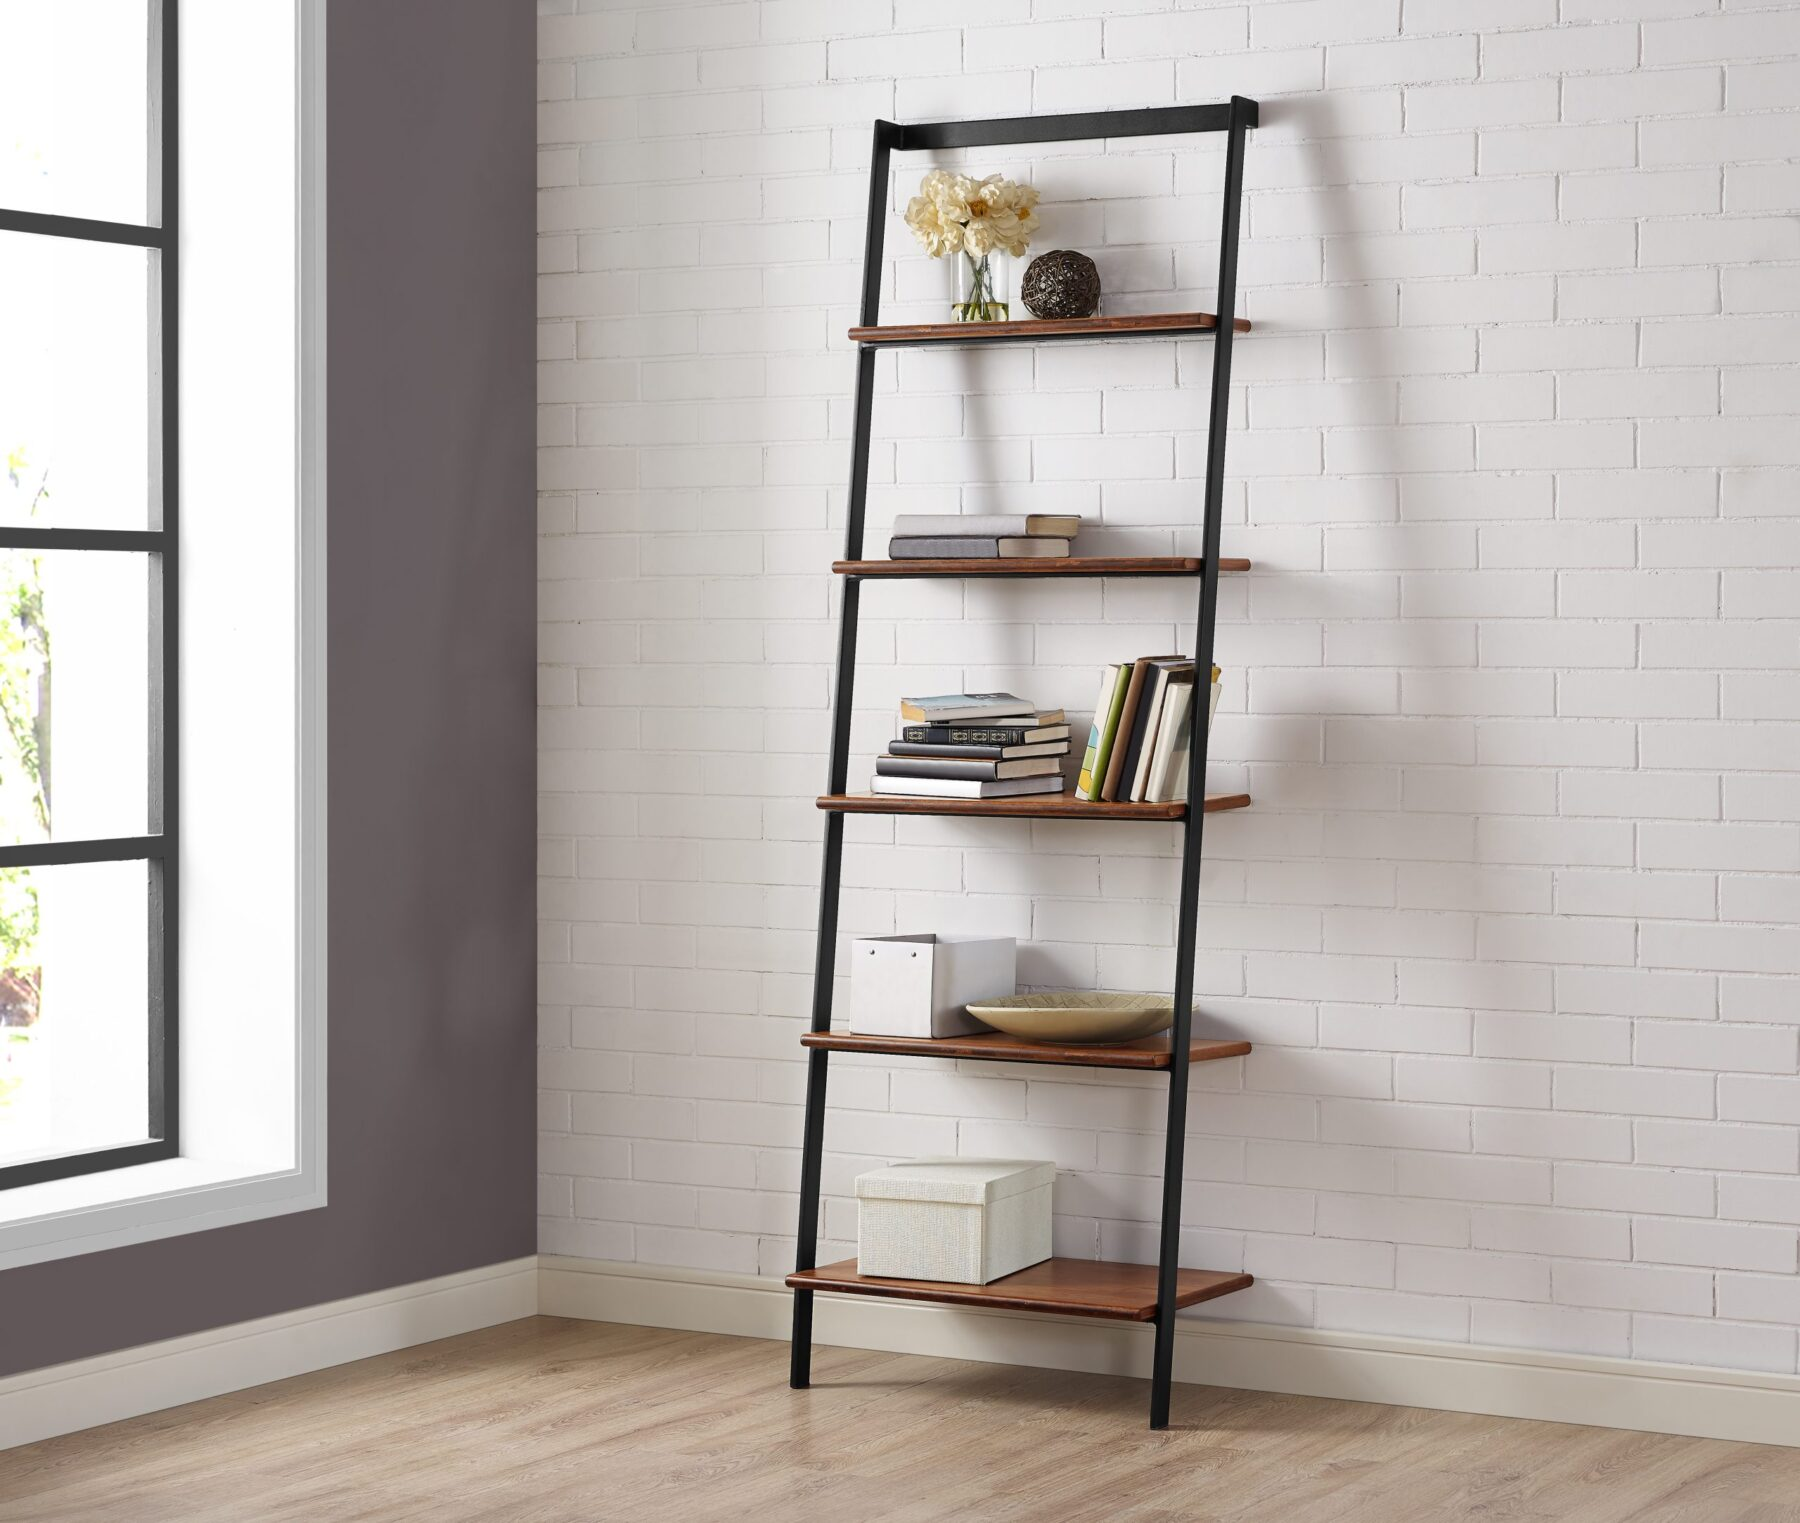 GS003E Leaning Shelf Lifestyle